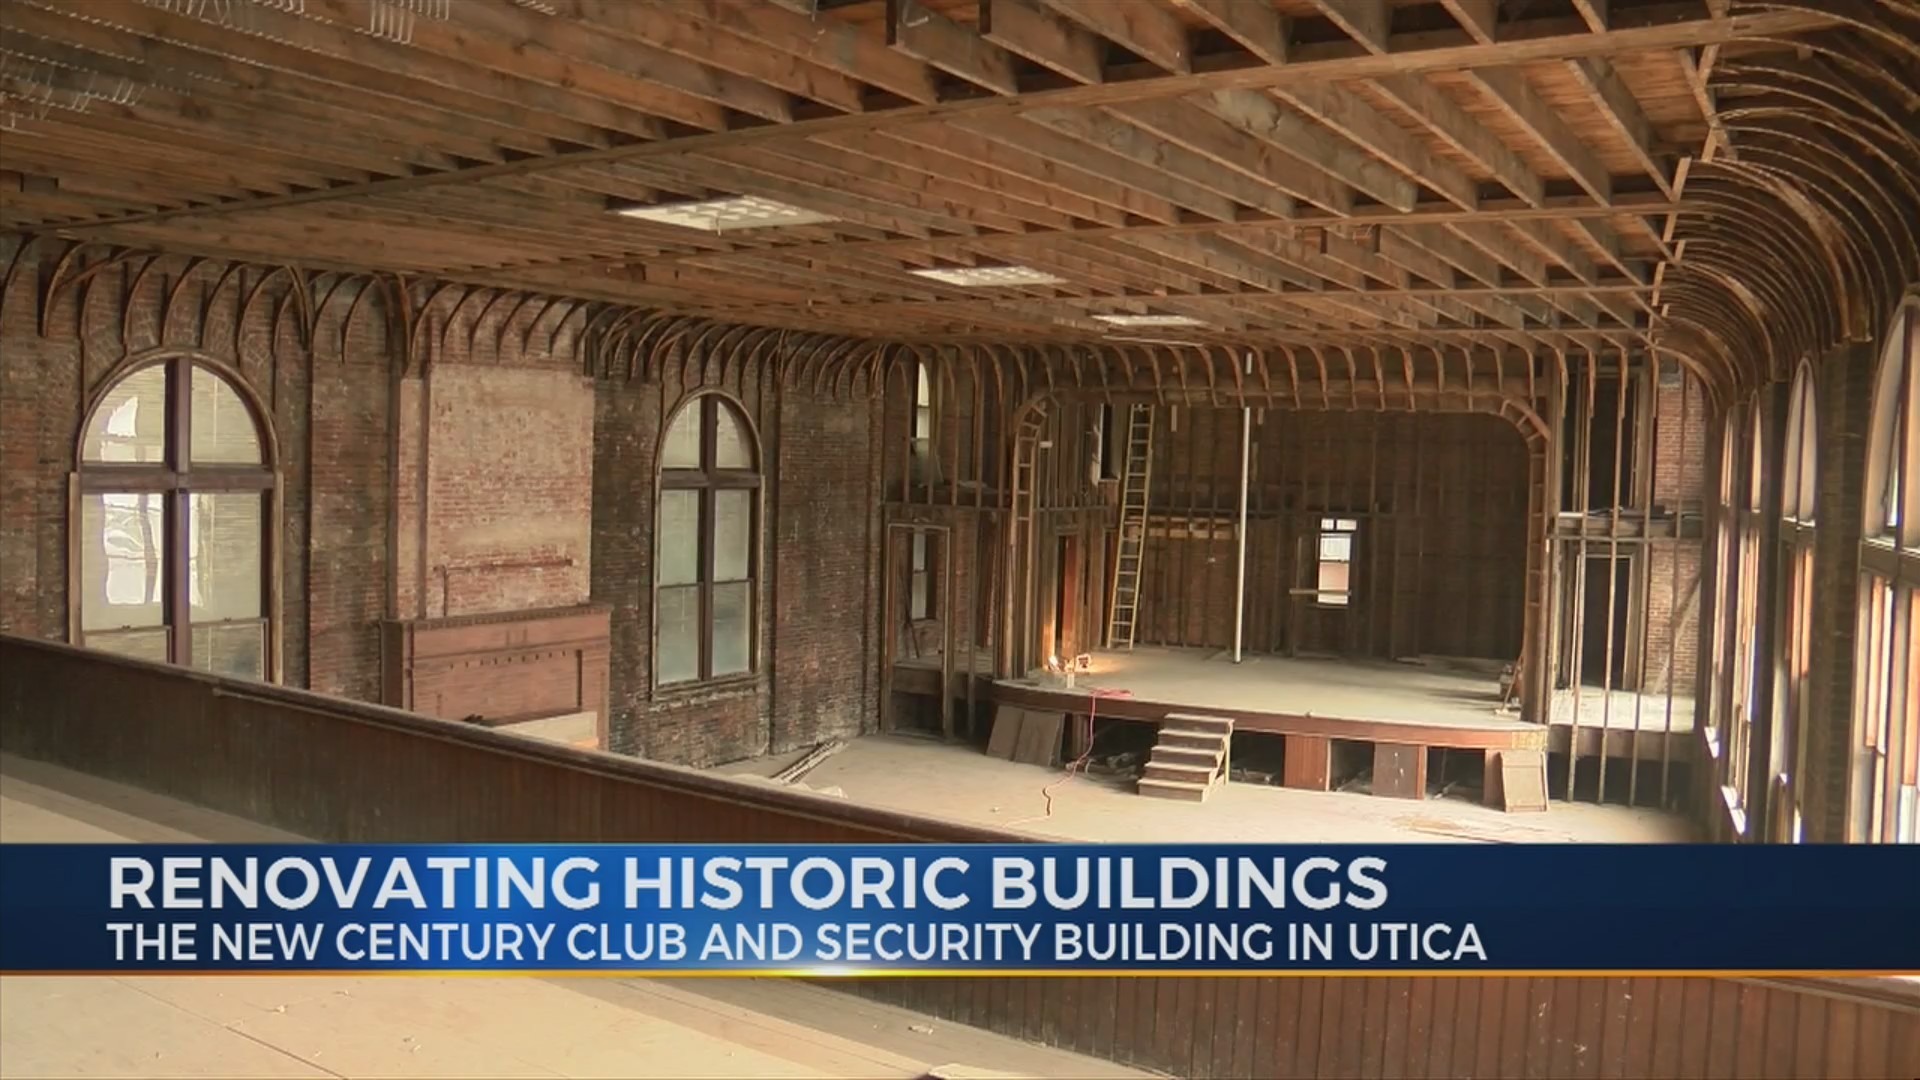 Renovating_Historic_Buildings_0_20181213231437